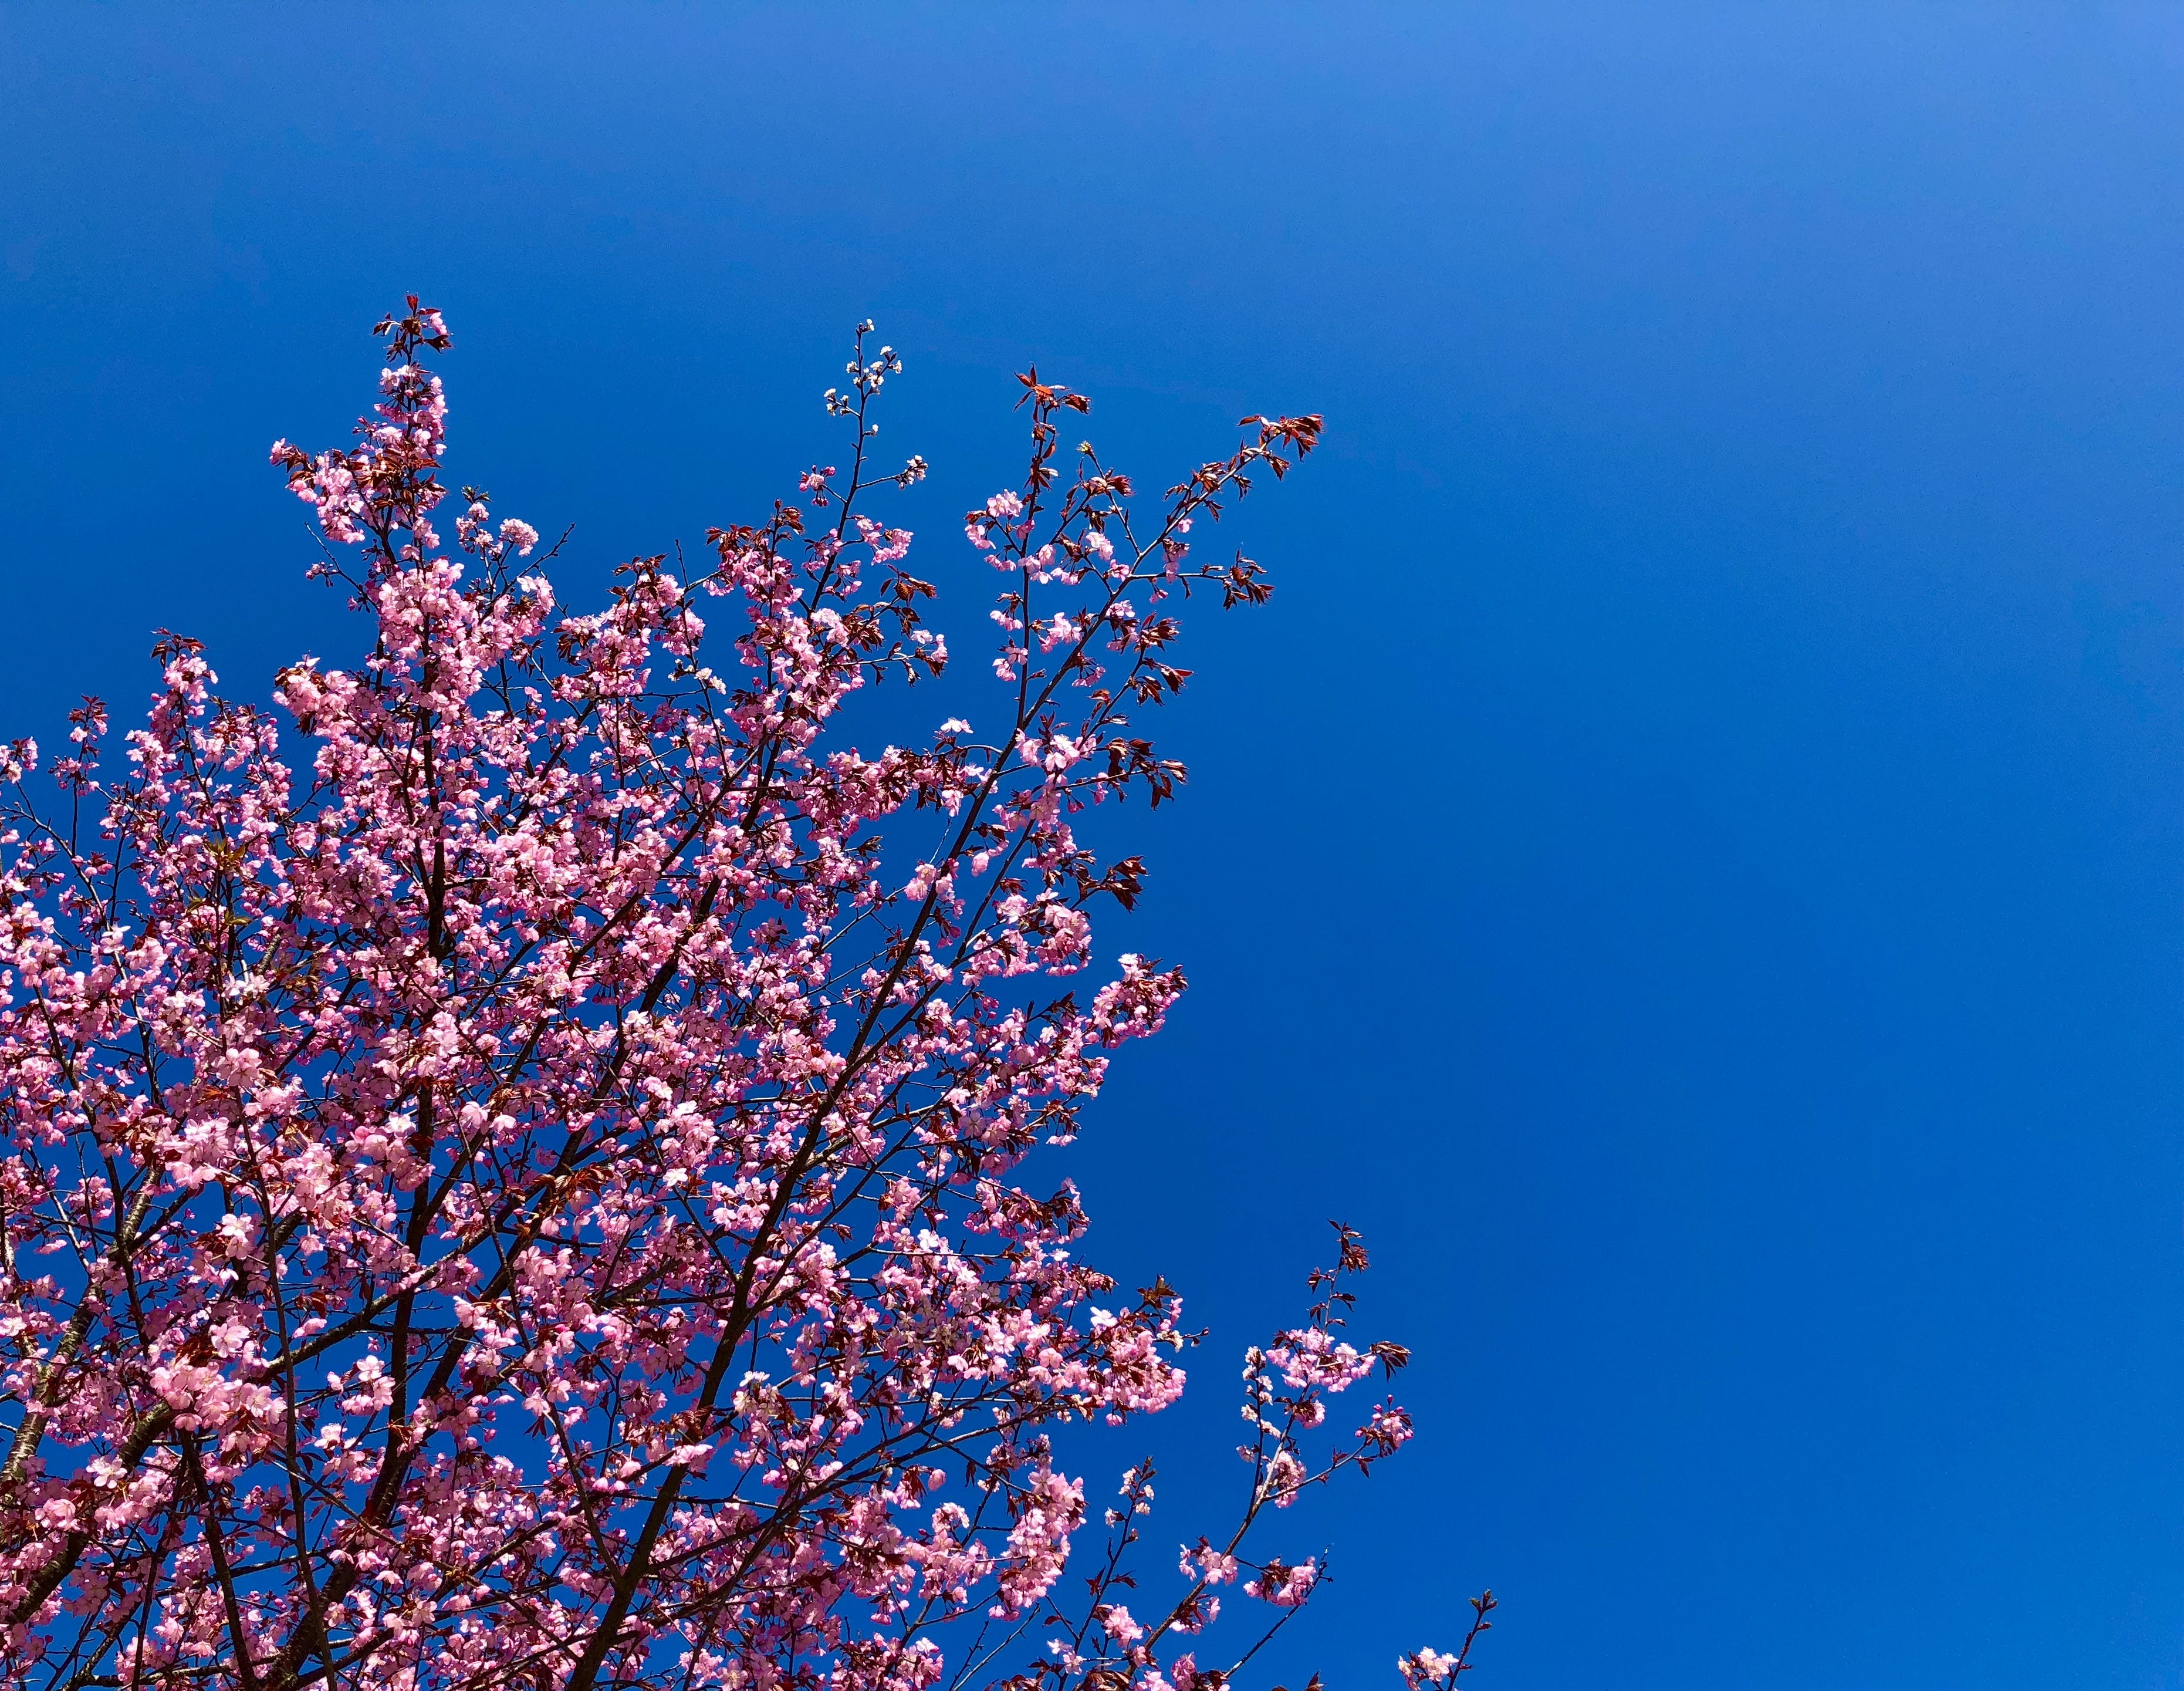 Free stock photo of beautiful flowers, blue sky, cherry blossom, cherry blossoms